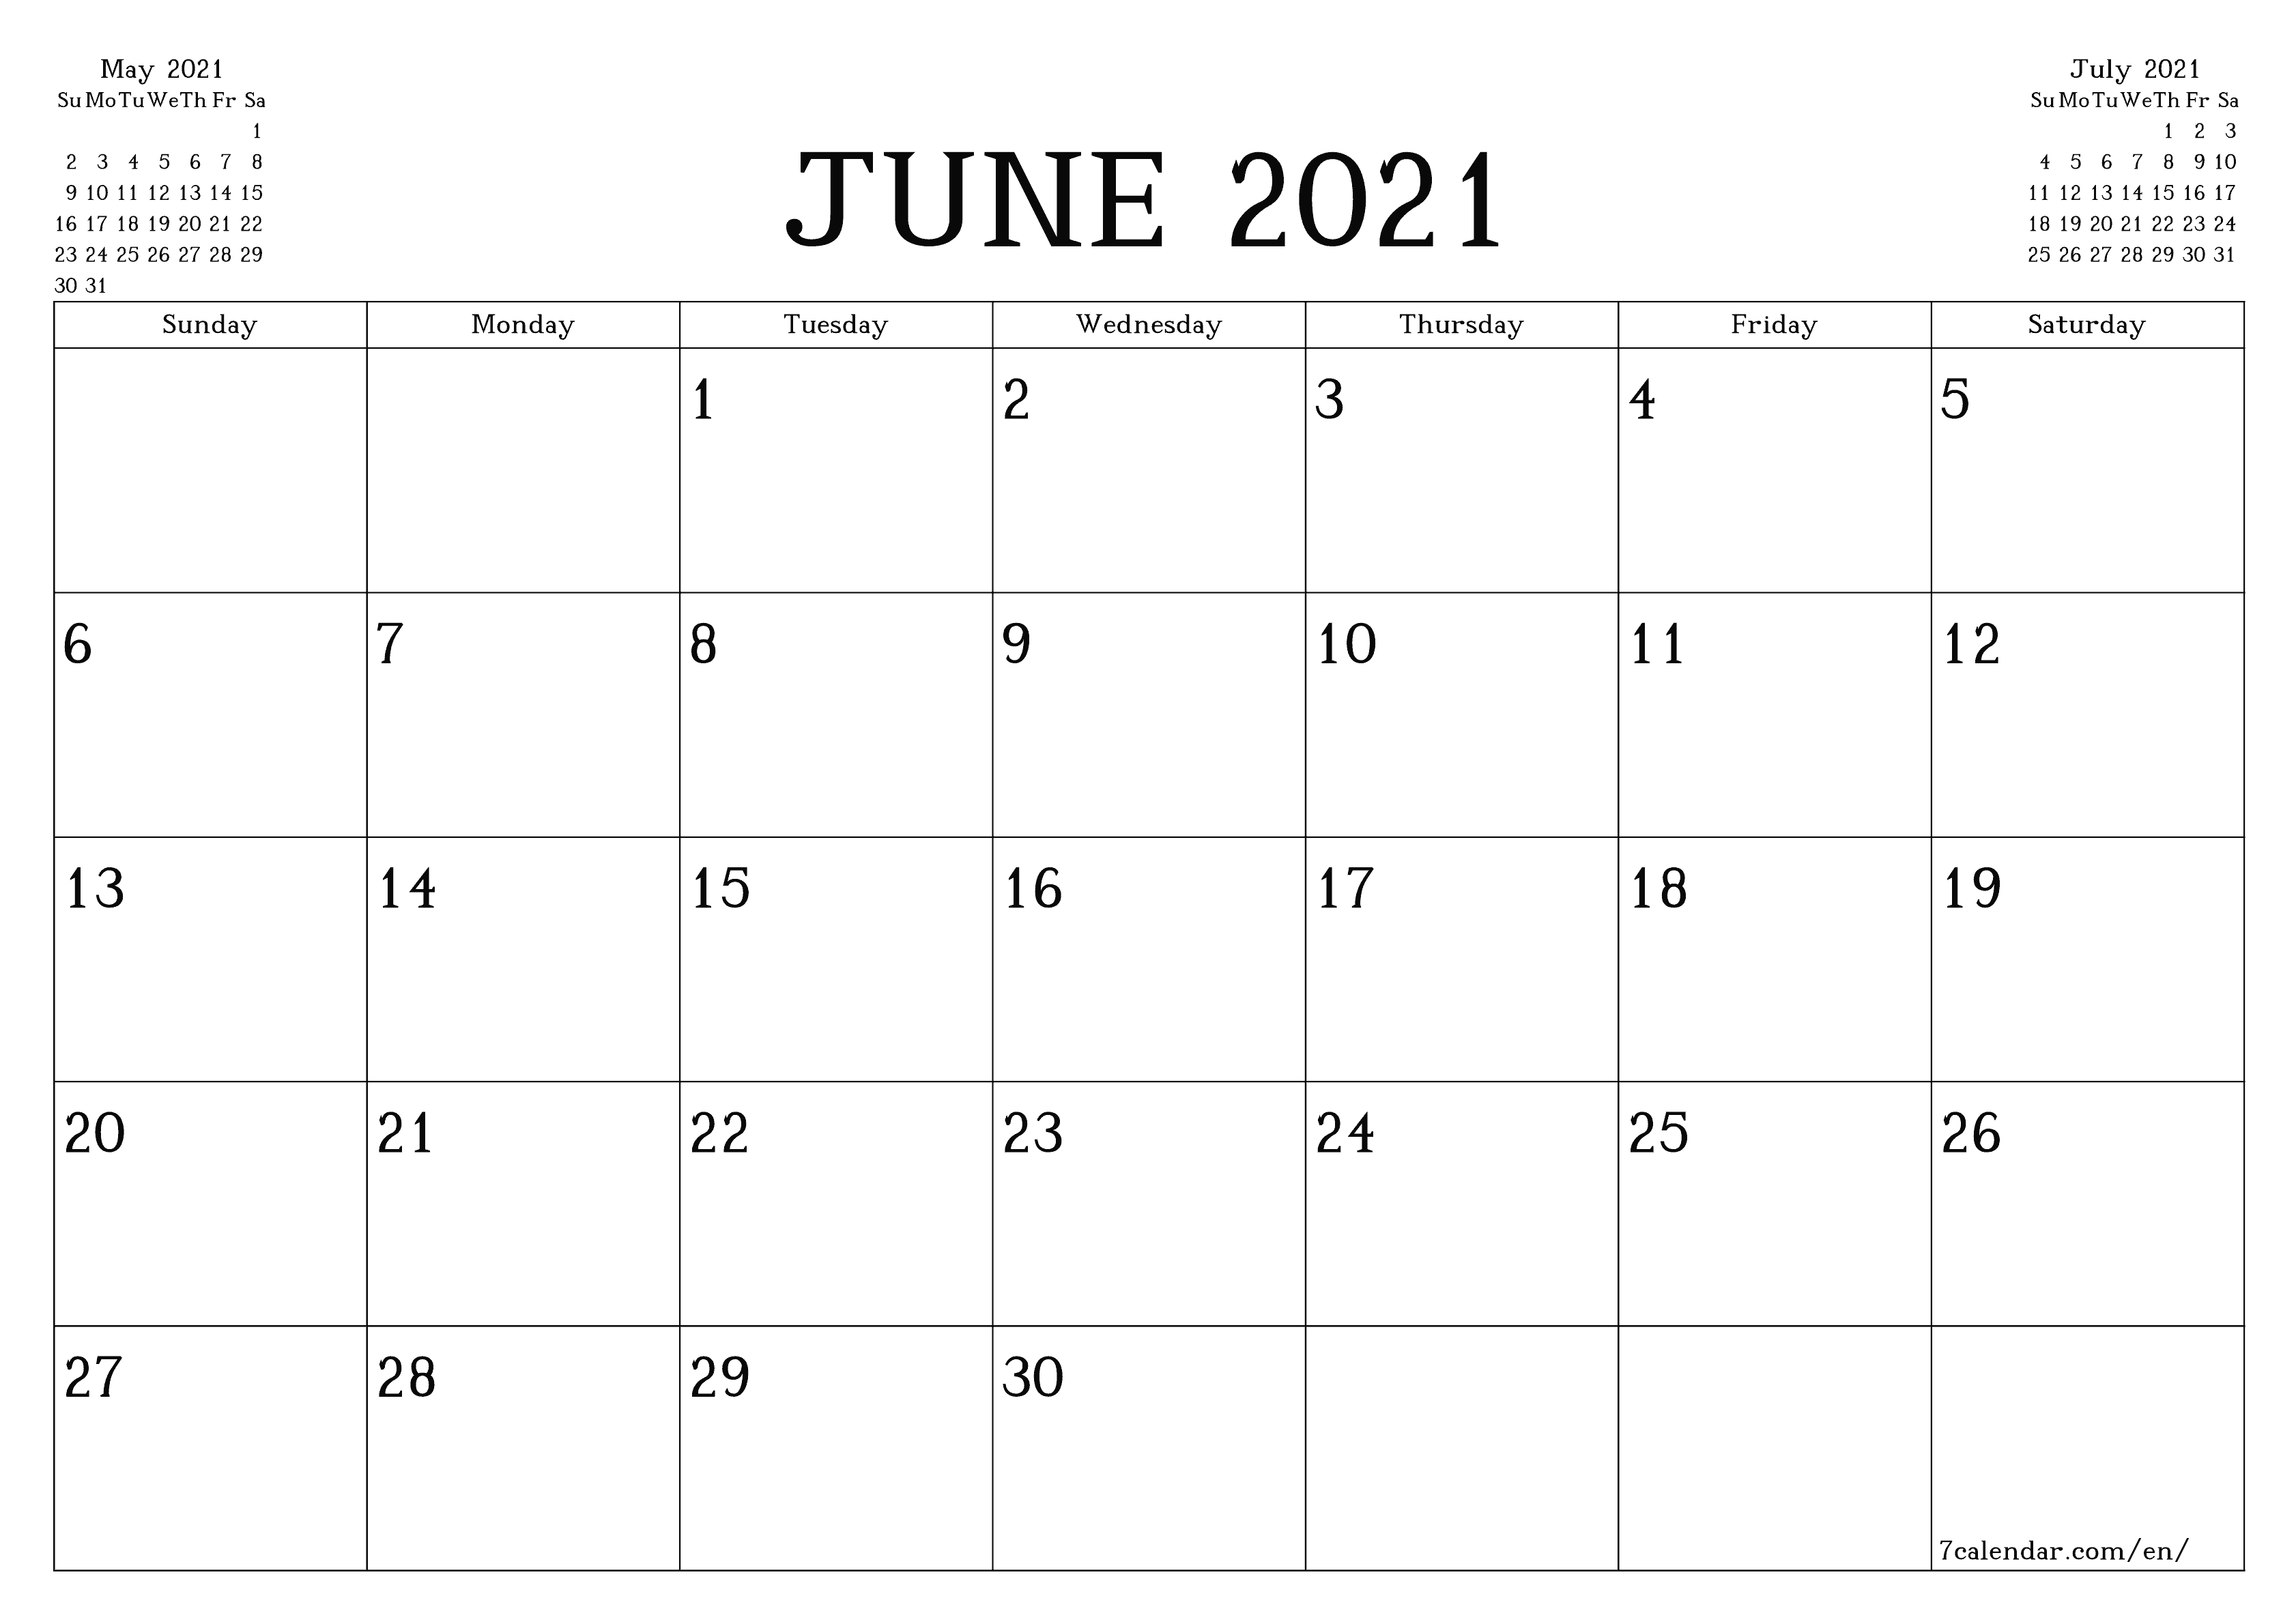 50 Best Printable June 2021 Calendars With Holidays - Onedesblog June 2020 To June 2021 Calendar Printable